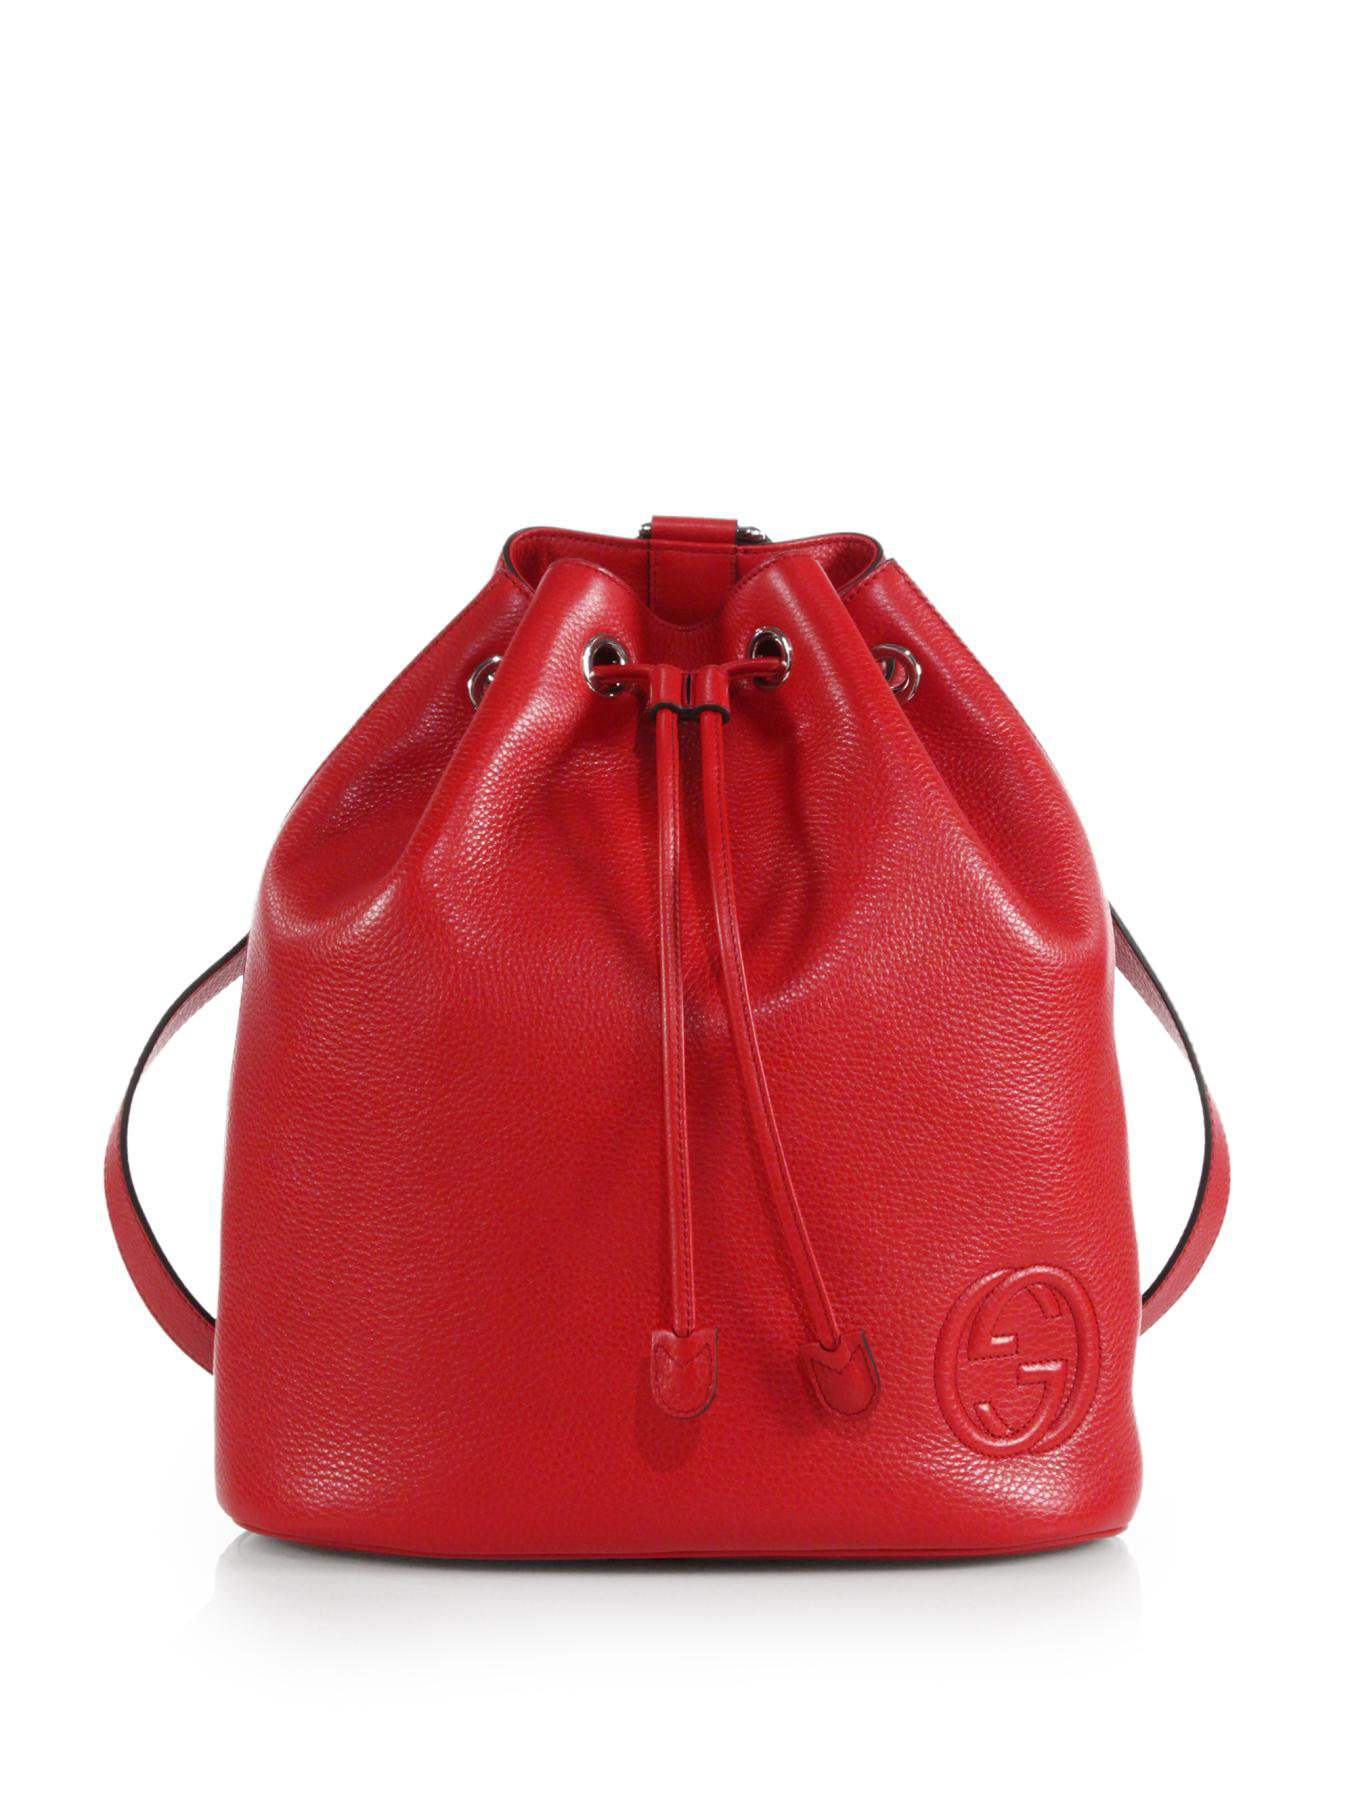 a946f8914d9e Lyst - Gucci Soho Leather Drawstring Backpack in Red for Men